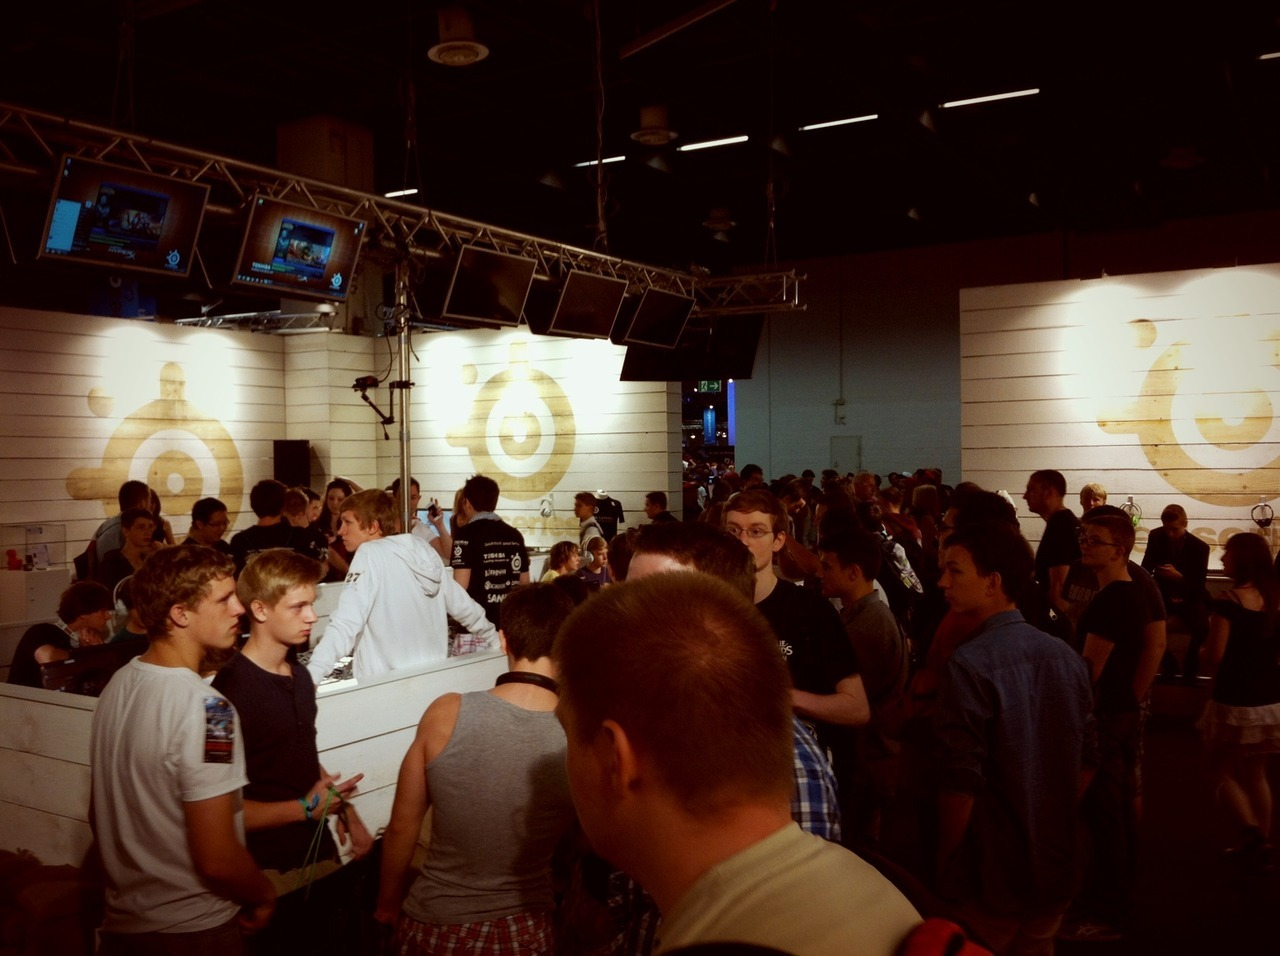 SteelSeries/SK booth at gamescom 2011 – View on Path.